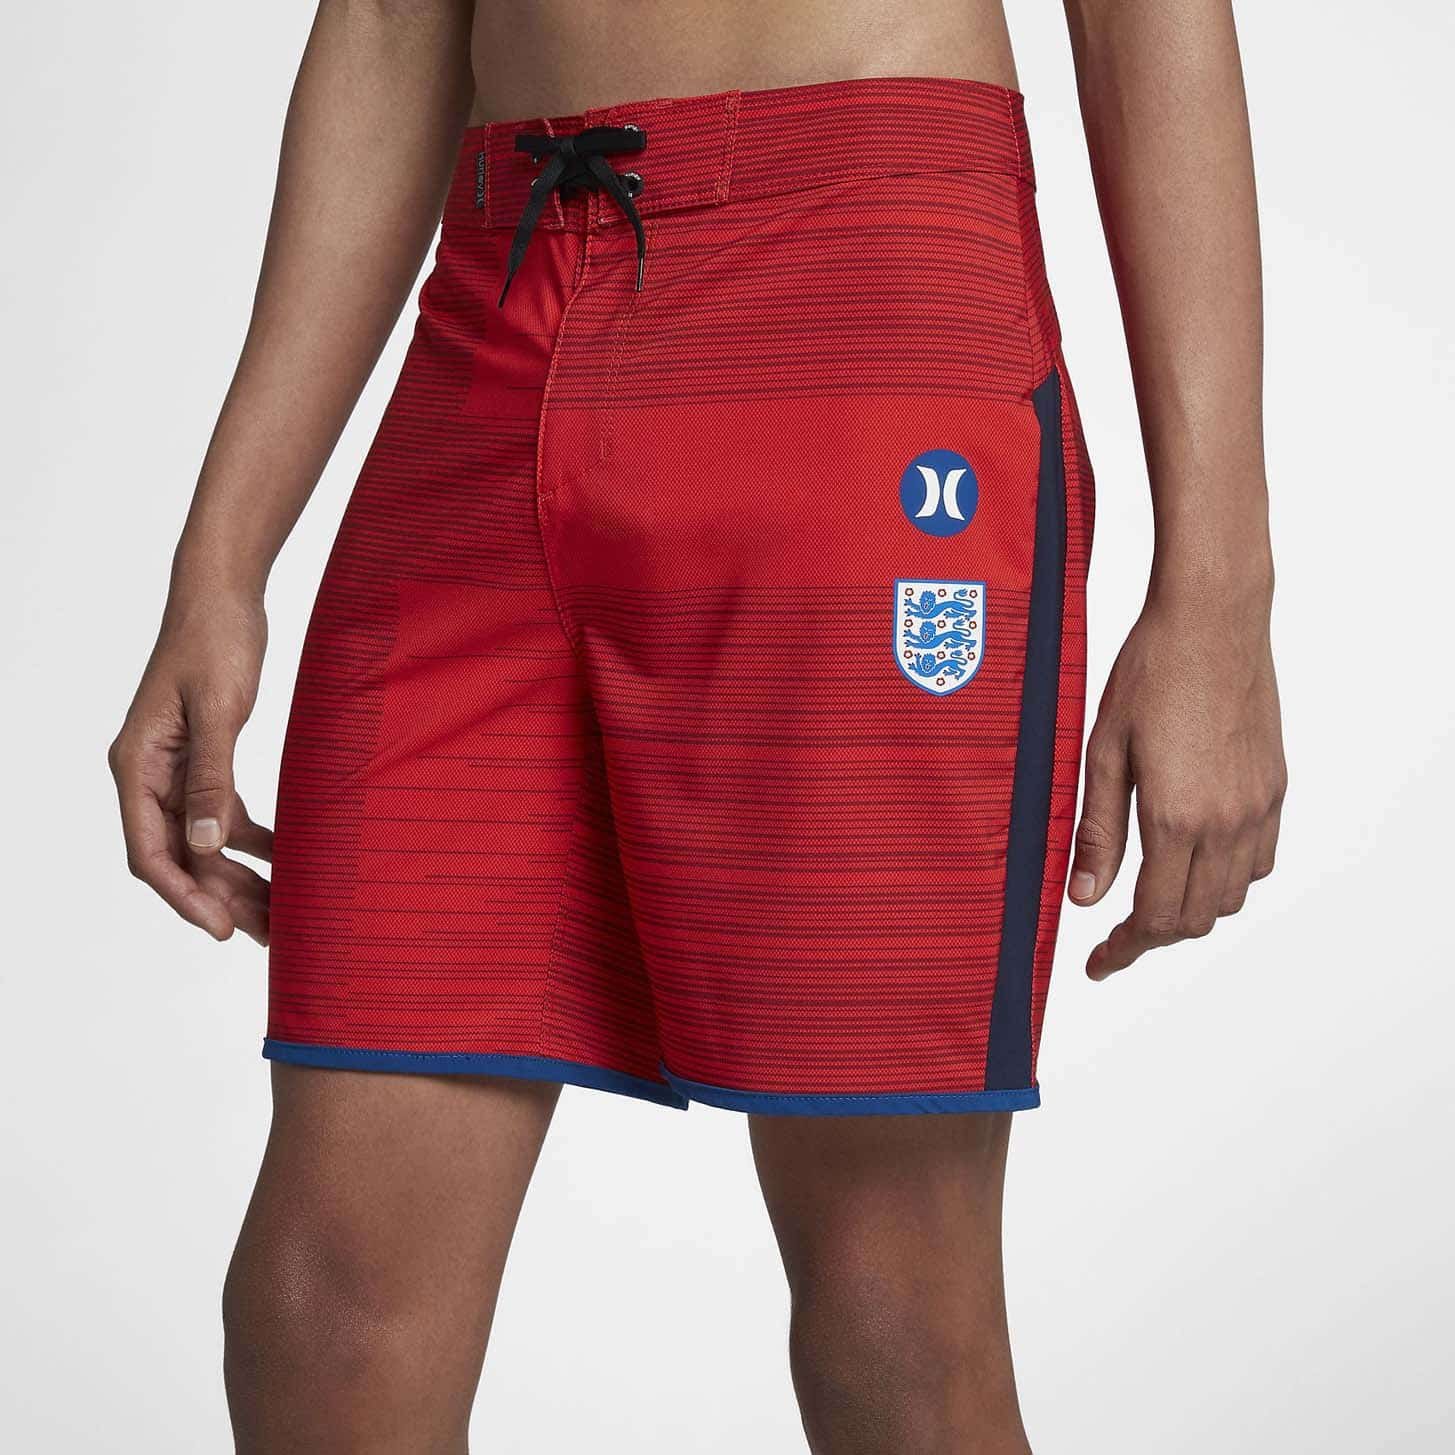 Sportstyle-hurley-board-short-sélections-nationales-coupe-monde-2018-mai-2018-1